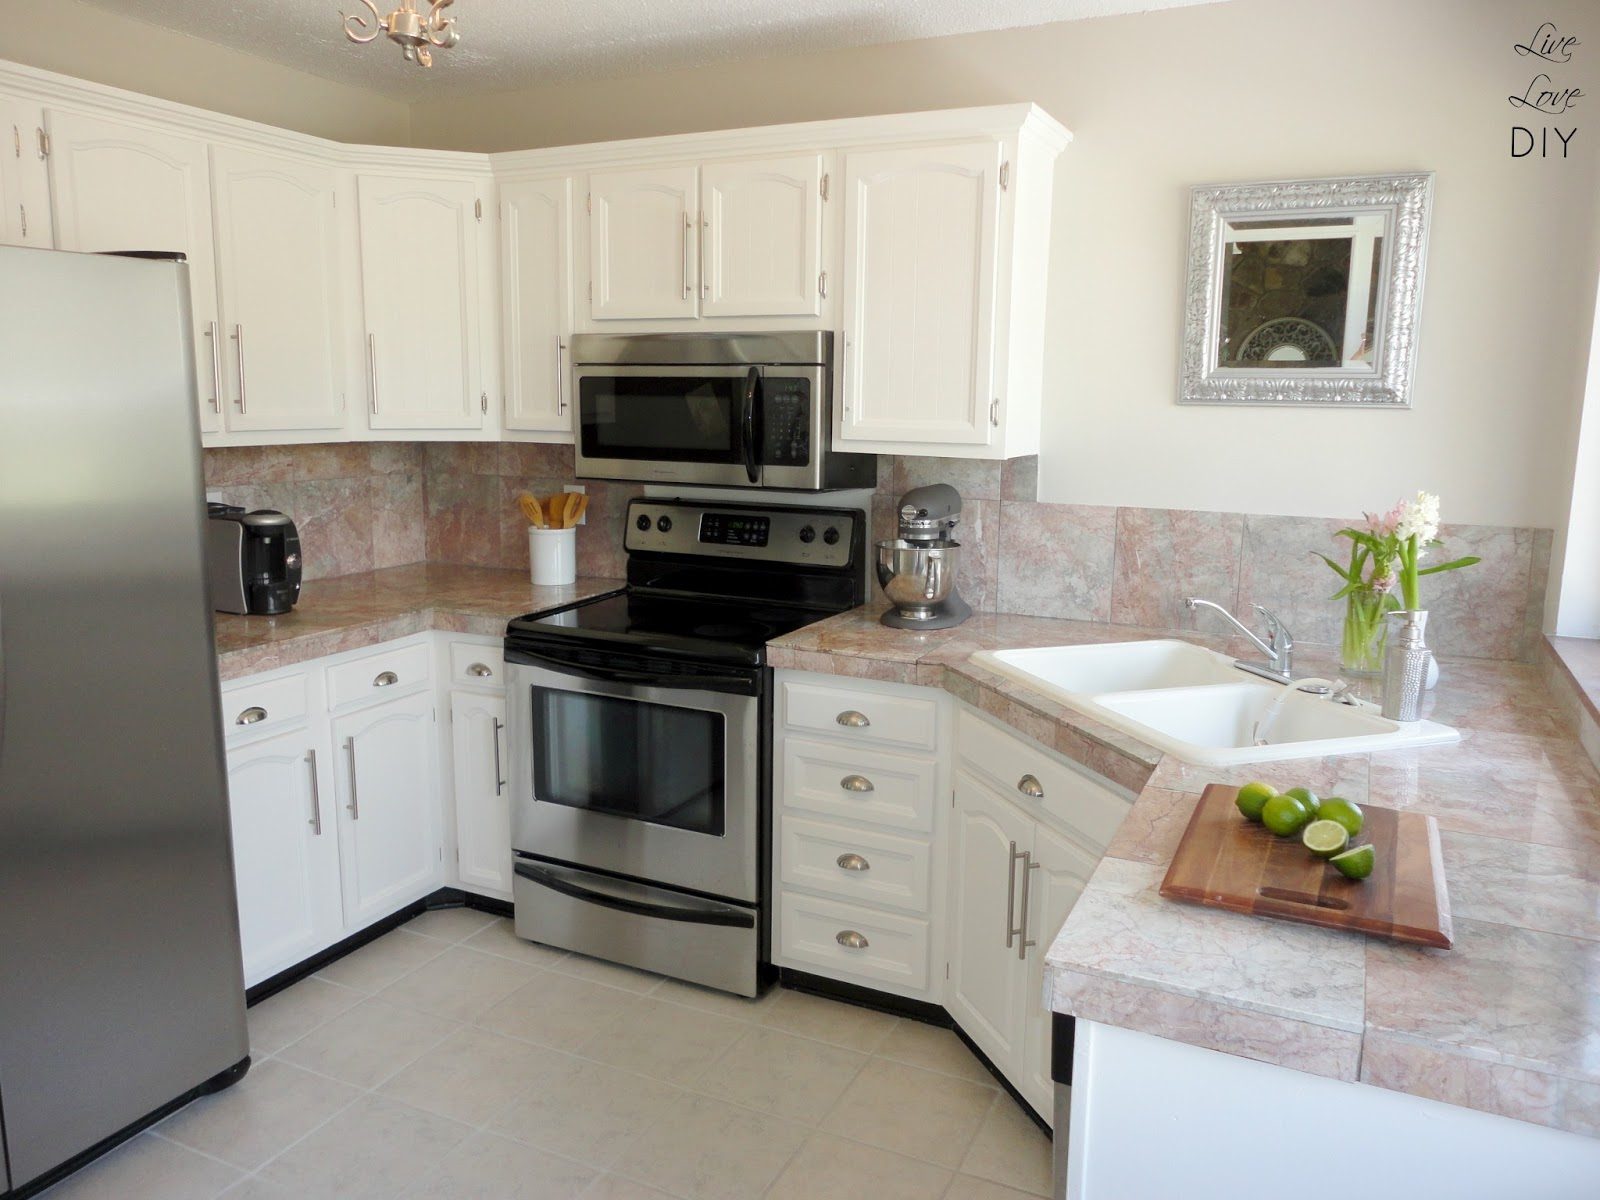 Marble Top and White Painted Kitchen Cabinets Placed inside Small Kitchen with Tile Flooring